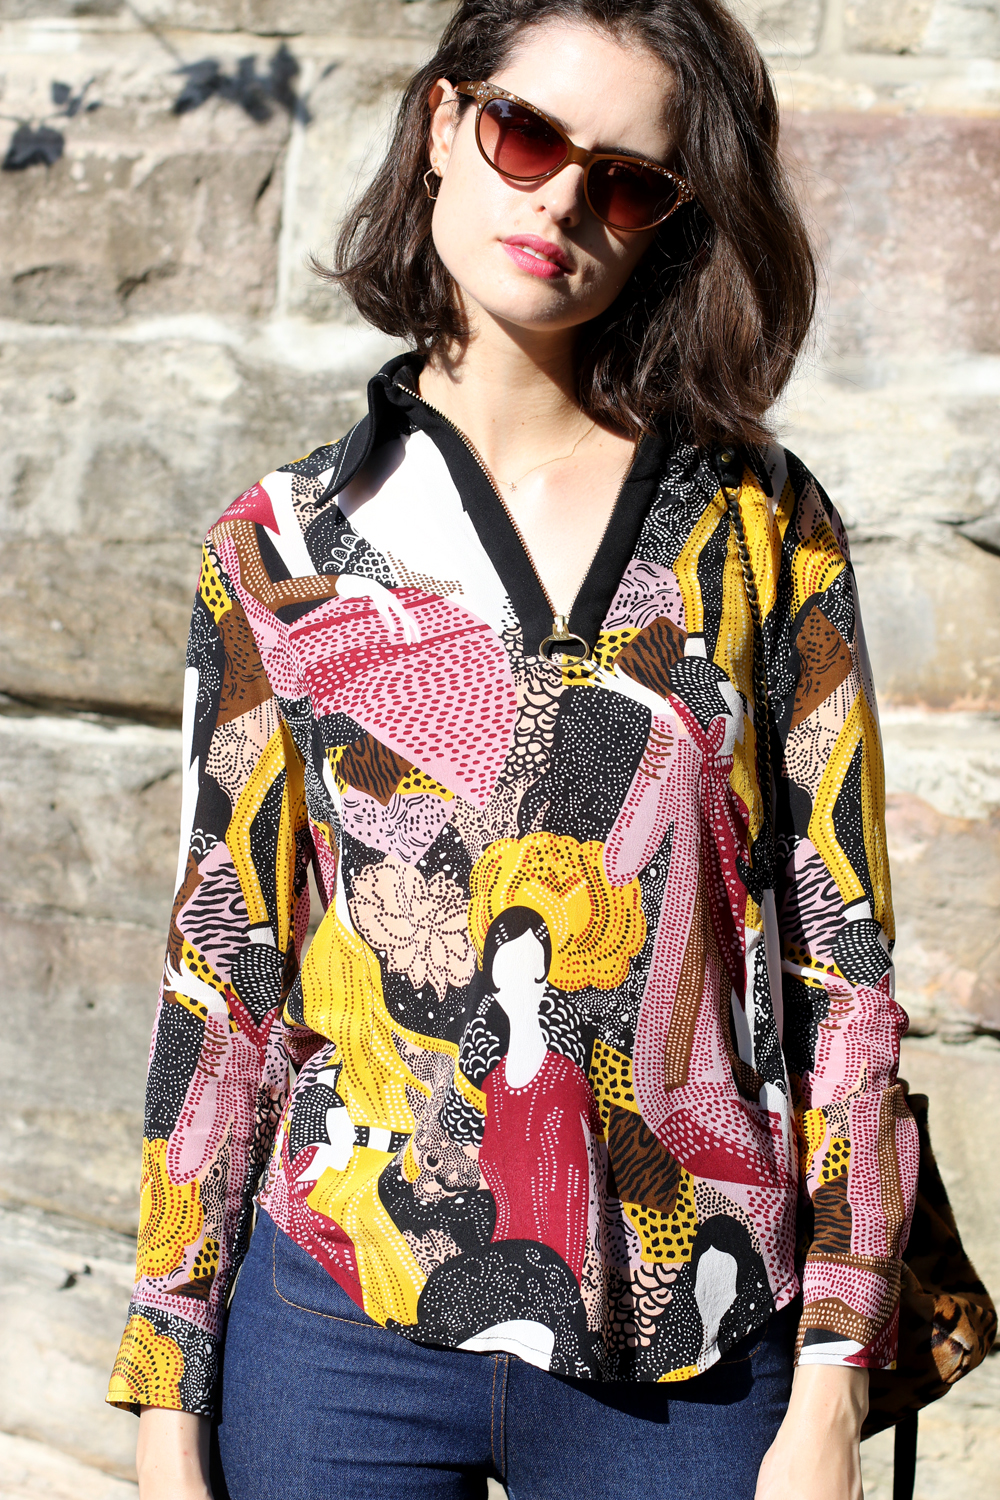 Sydney Fashion Blogger Chloe Hill Wearing Karen walker printed zip up top and Sarah and Sebastian star necklace on the streets of sydney